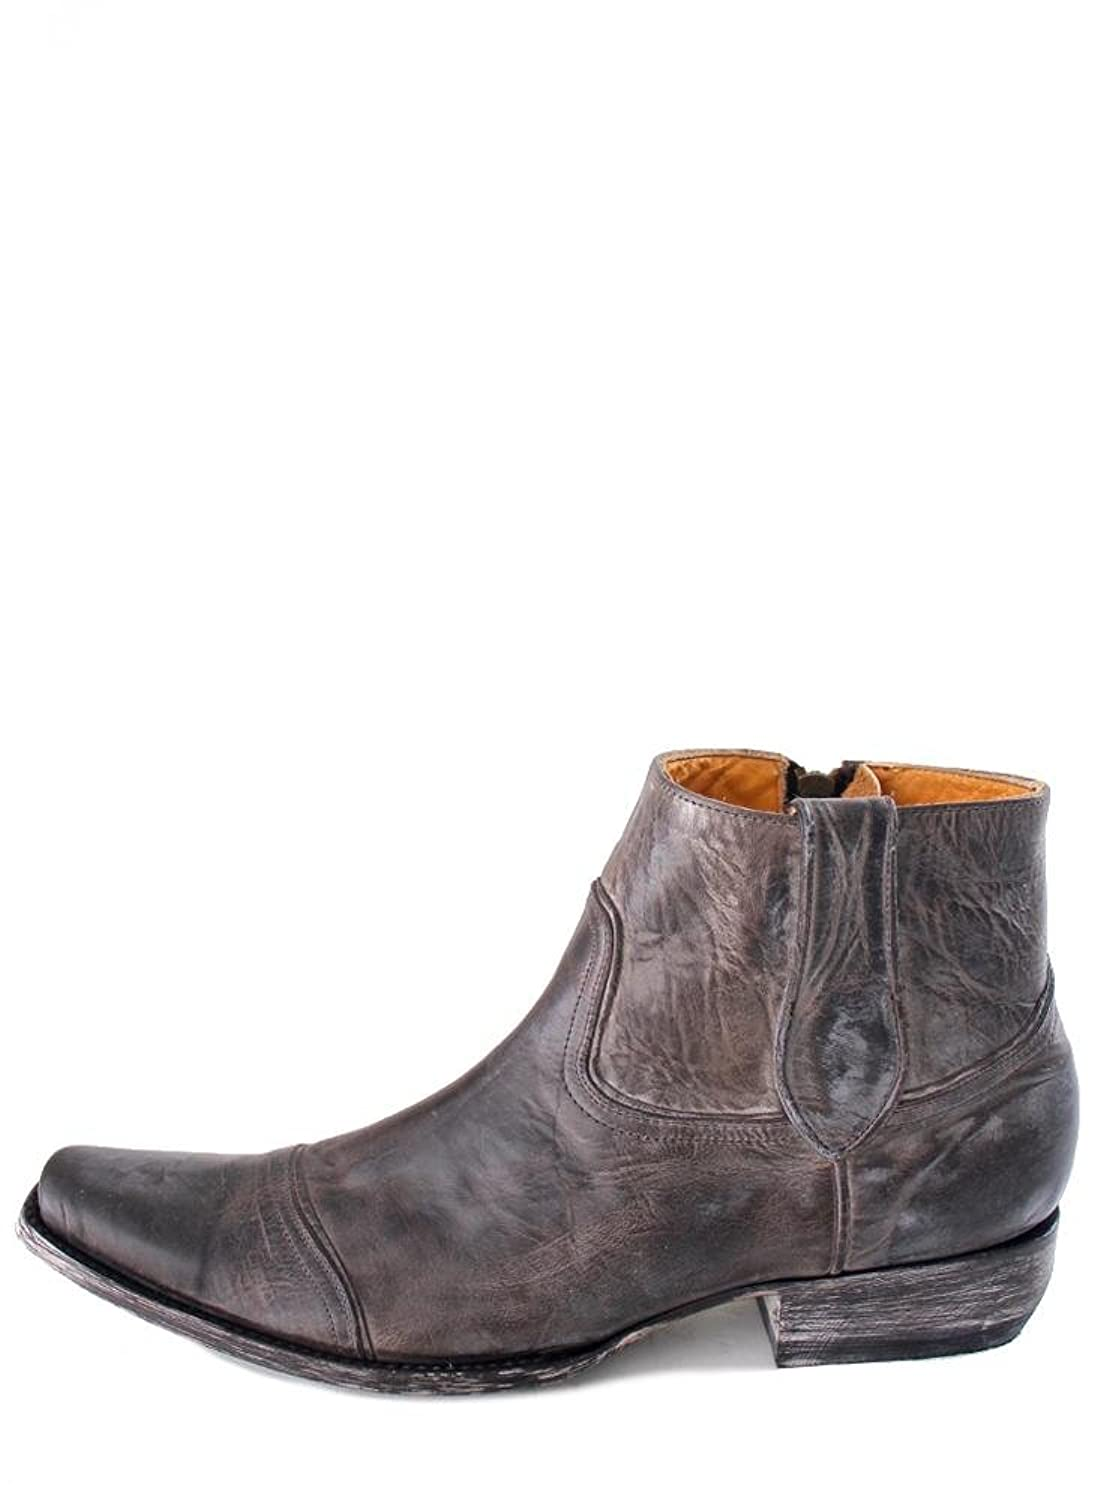 Old Gringo Hawk Zip Furia Mens Boots